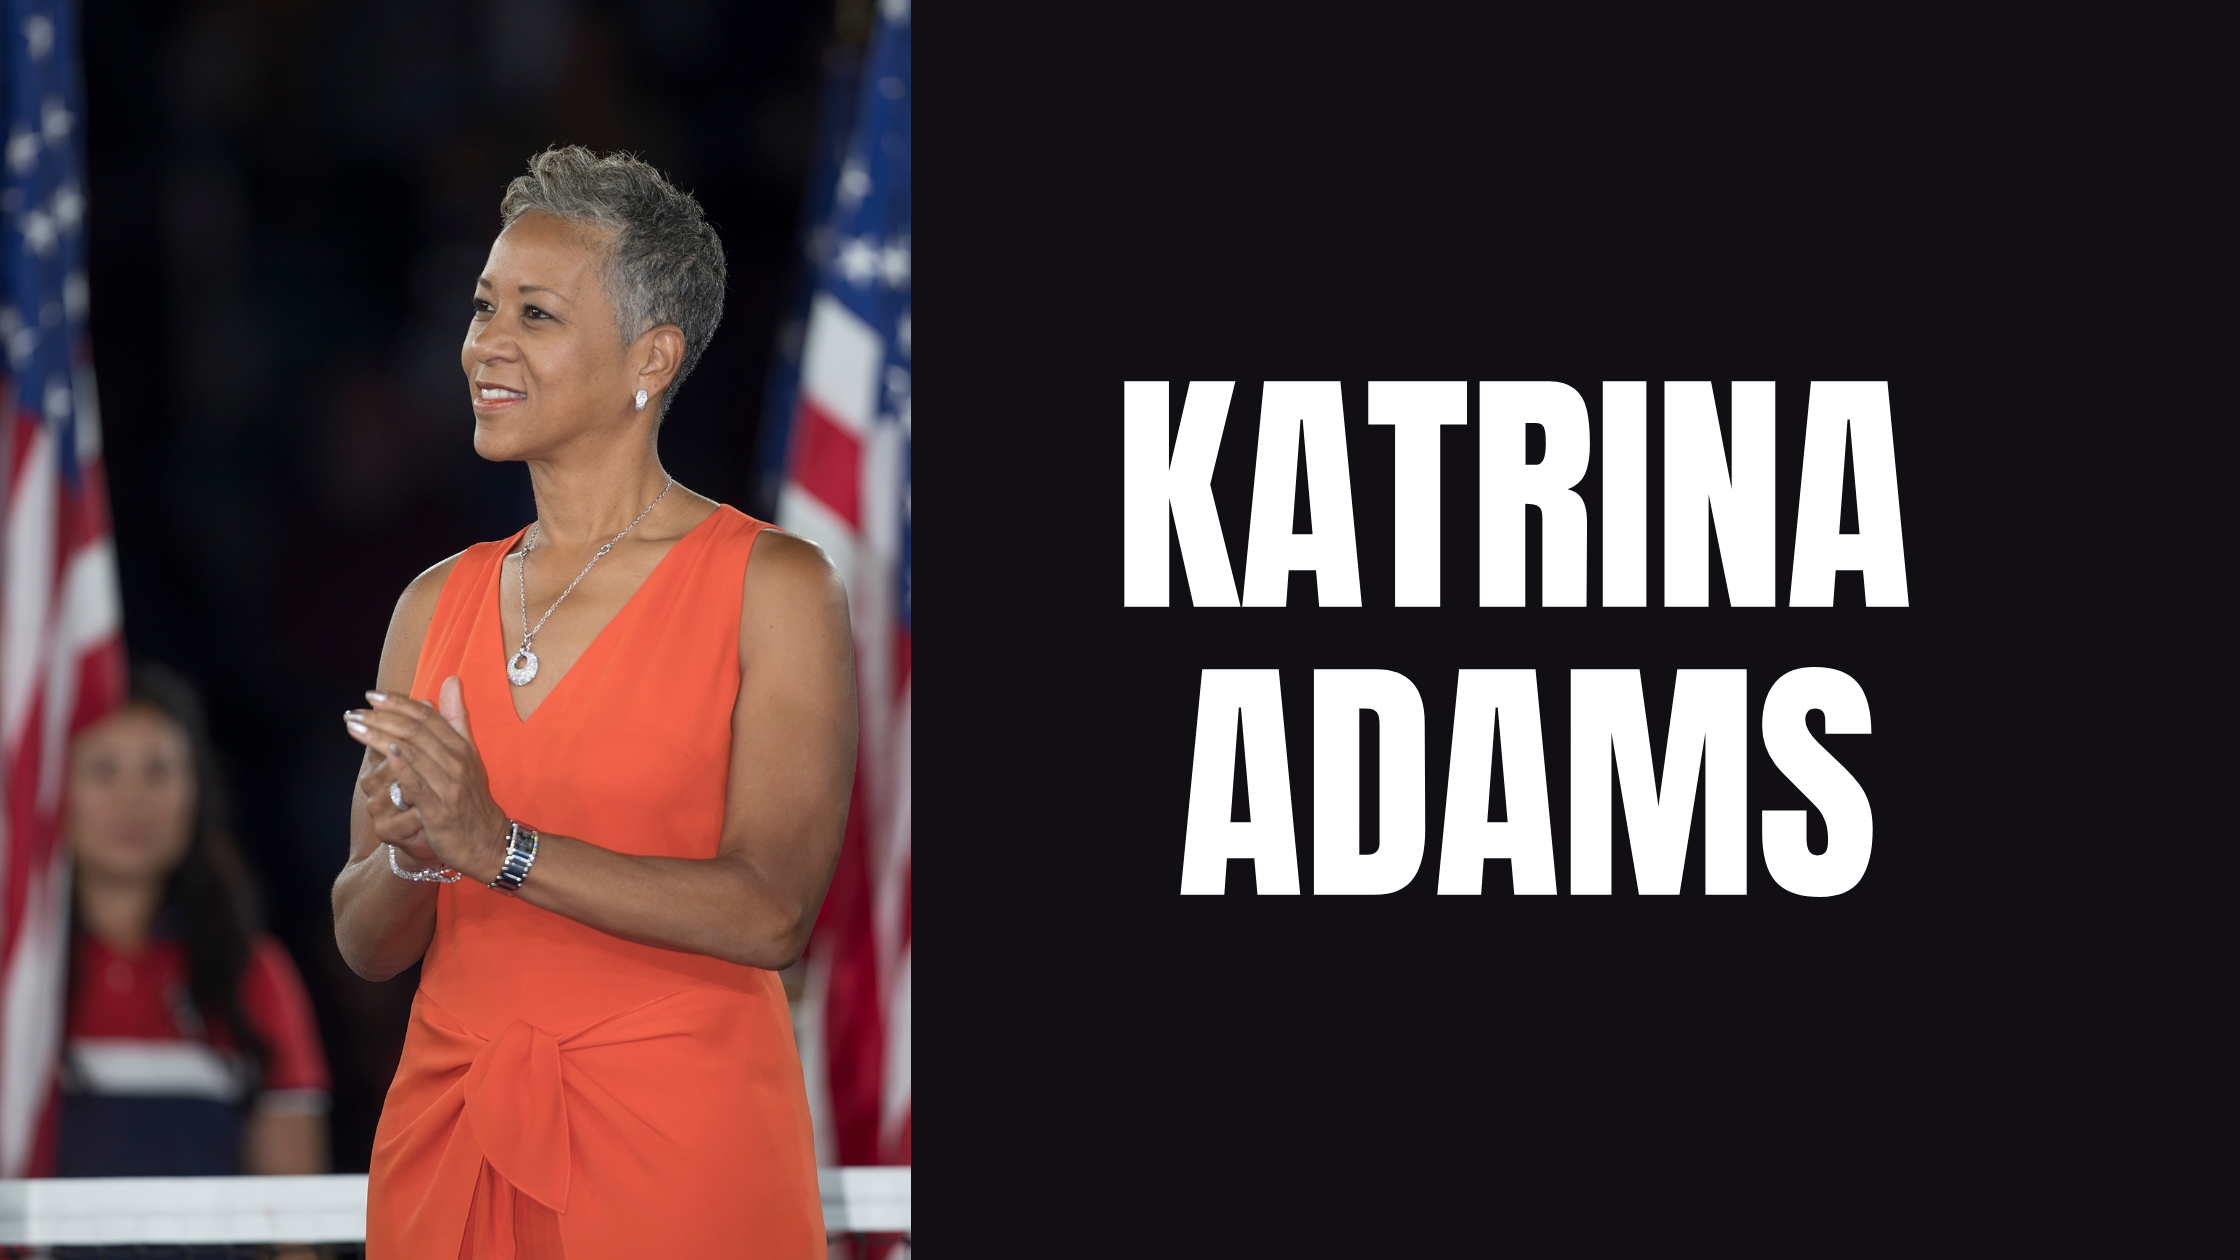 Katrina Adams' new book offers glimpse at the richness of Black tennis history